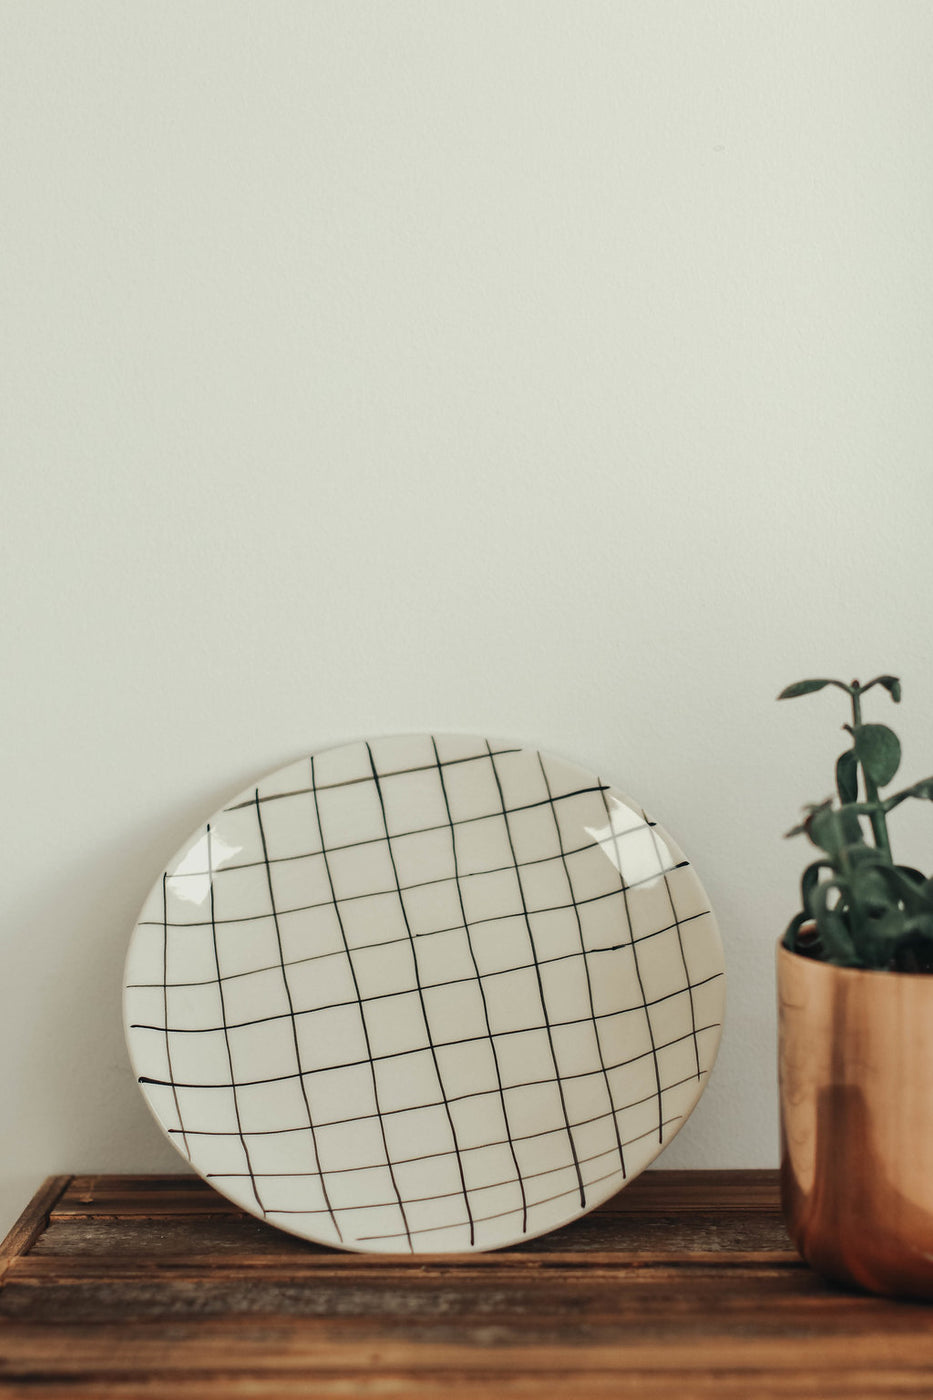 Inverness Ceramic Plate in Thin Grid | ROOLEE